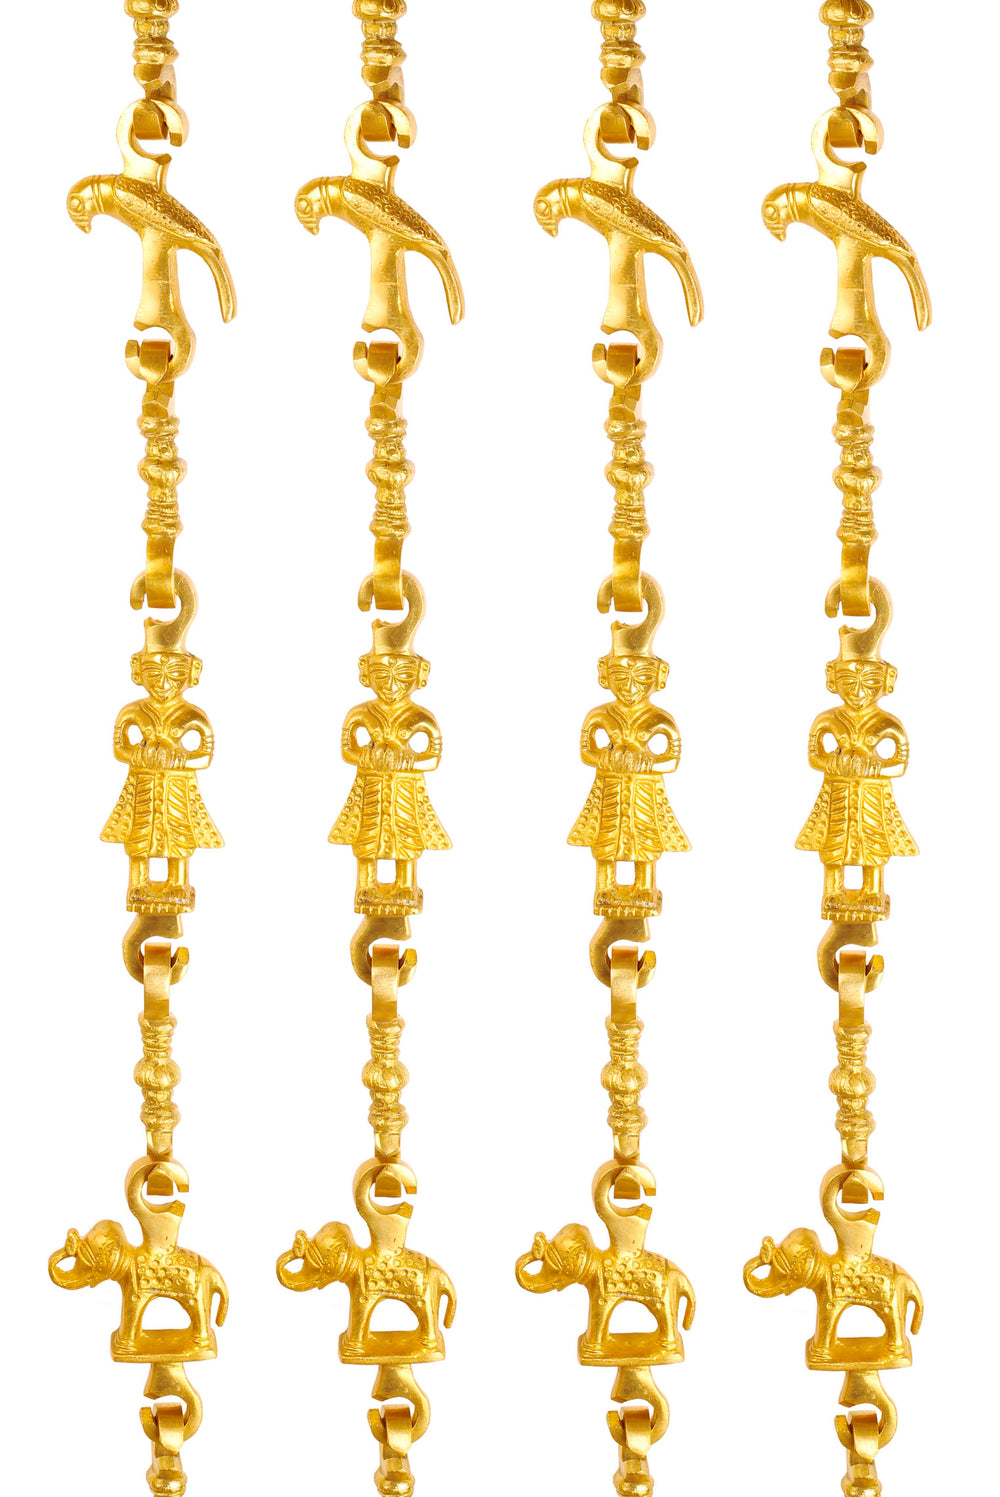 "Brass Swing Jhula Chain | Design:- Parrot-Men Guard-Elephant | Indoor Hanging Link | Approx 75.9"" Each 